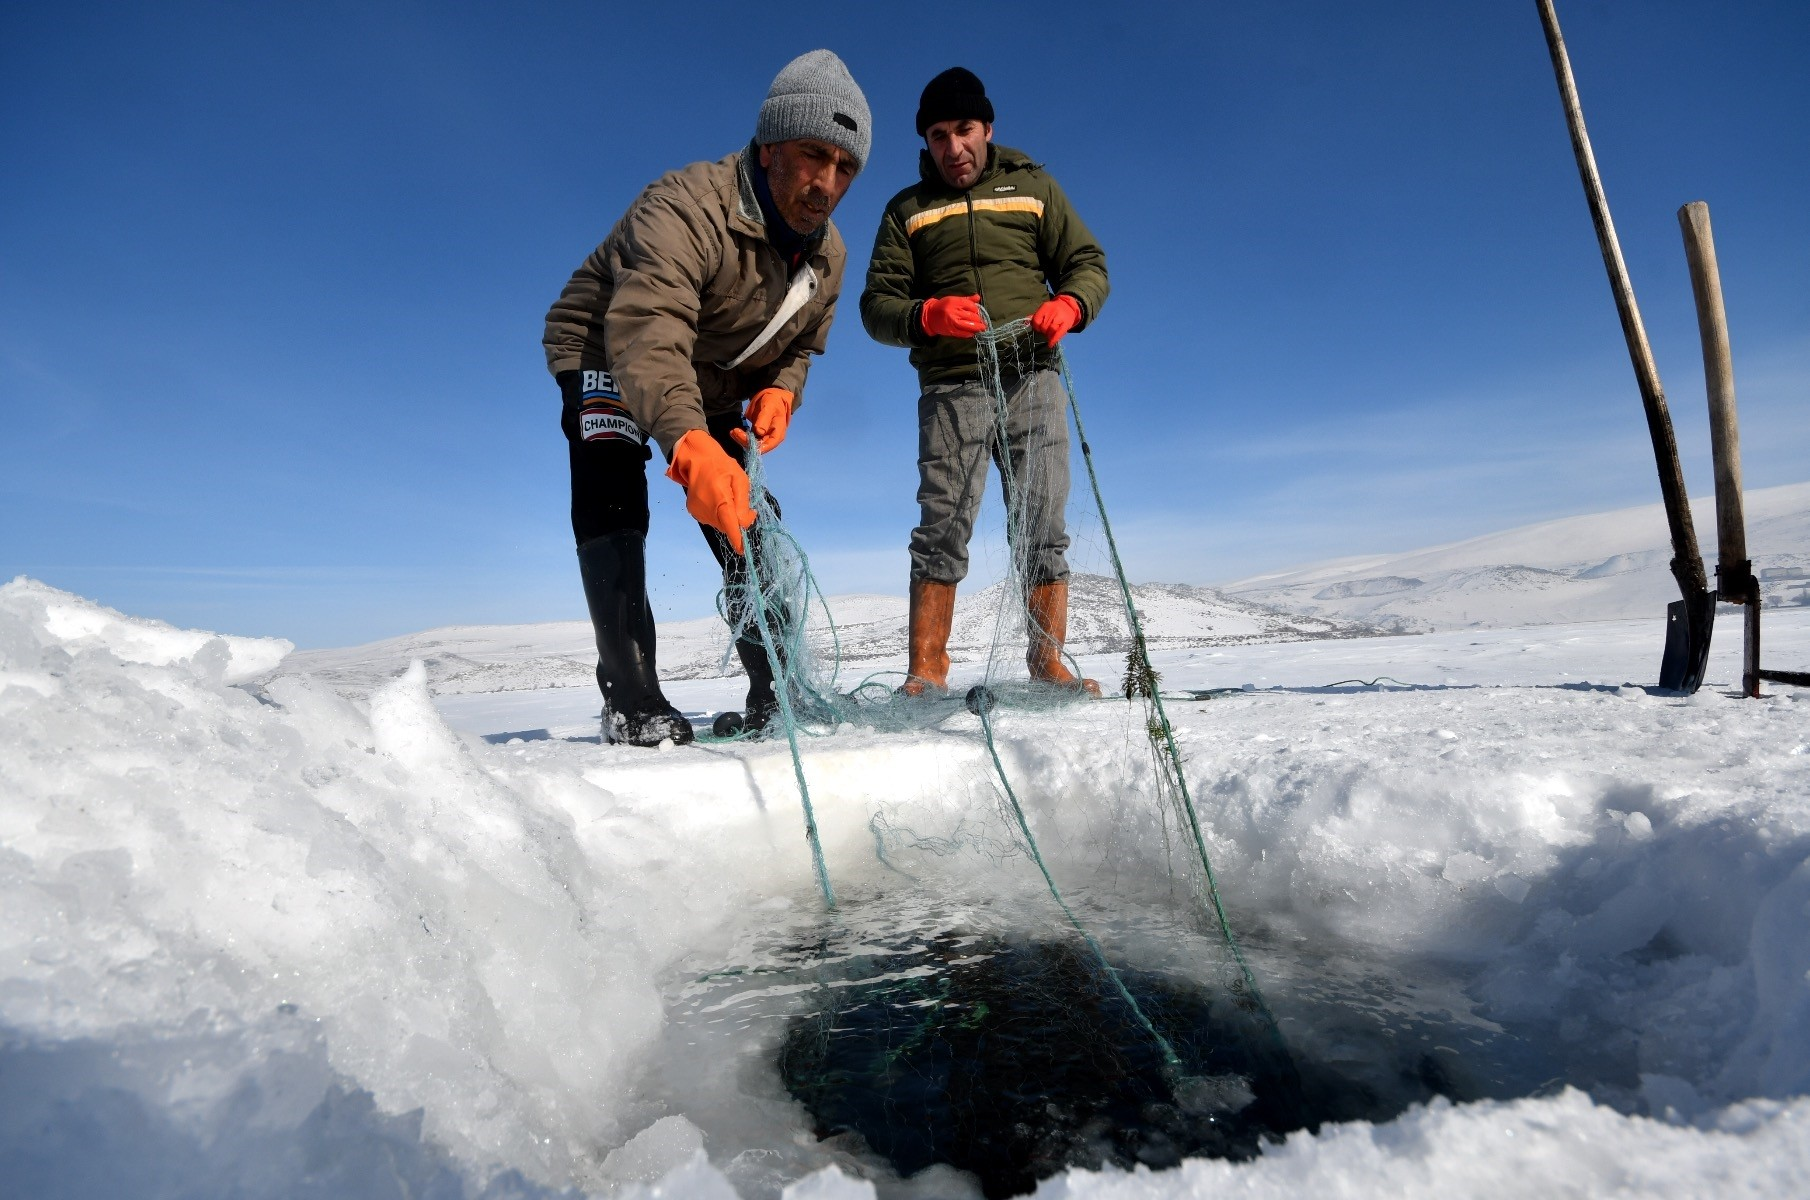 Breaking the ice with pickaxes and shovels, fishermen on Lake u00c7u0131ldu0131r give extra effort to fish.